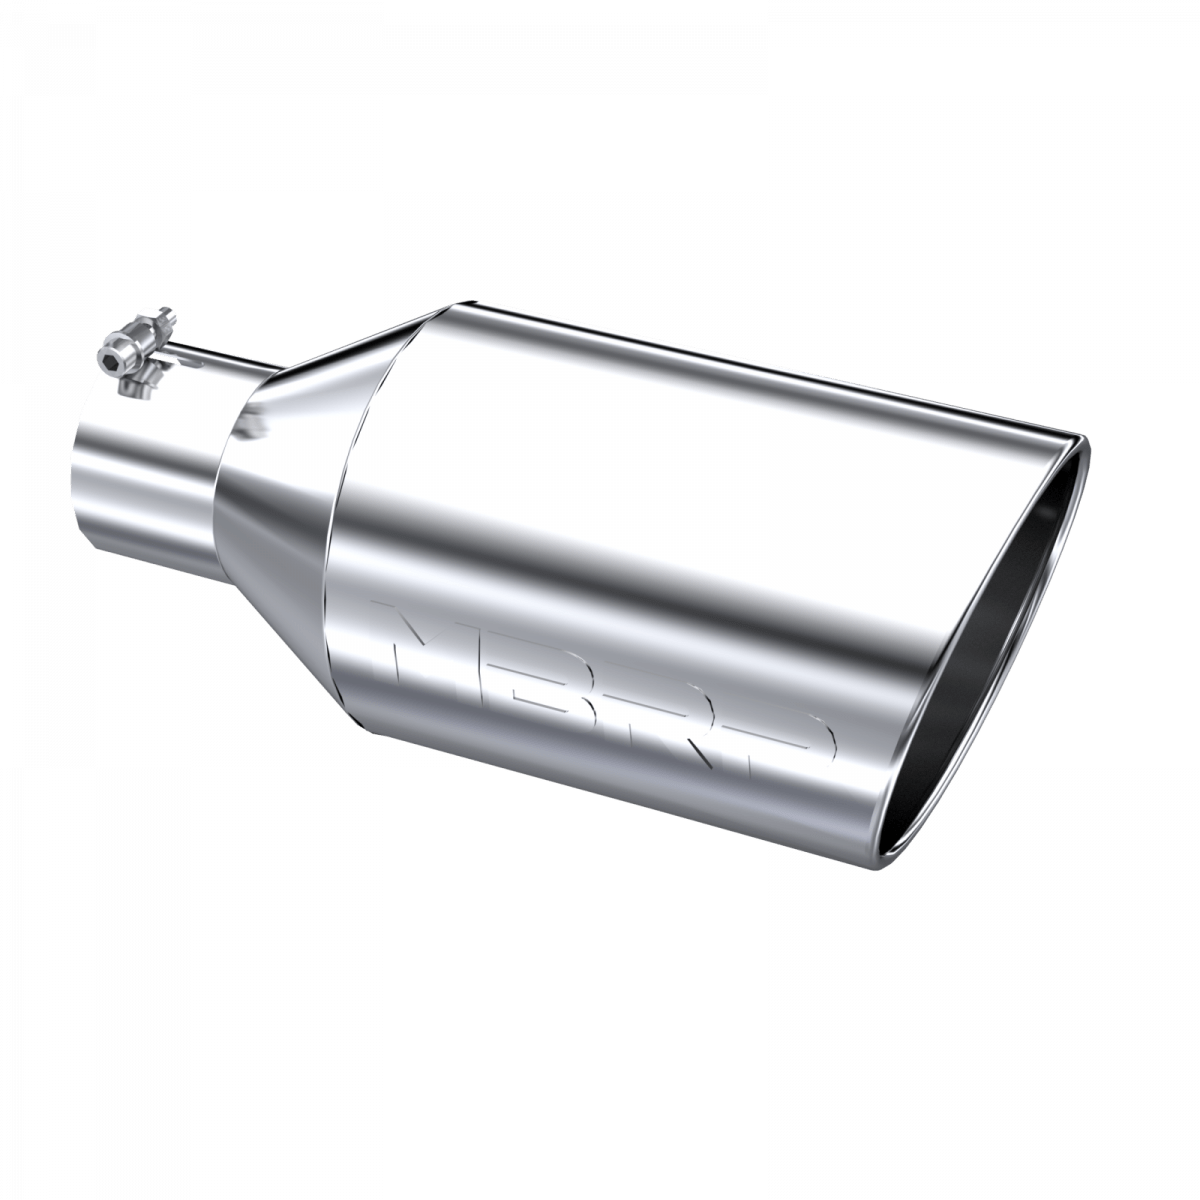 mbrp exhaust tip 8 inch o d rolled end 4 inch inlet 18 inch length t304 stainless steel t5128